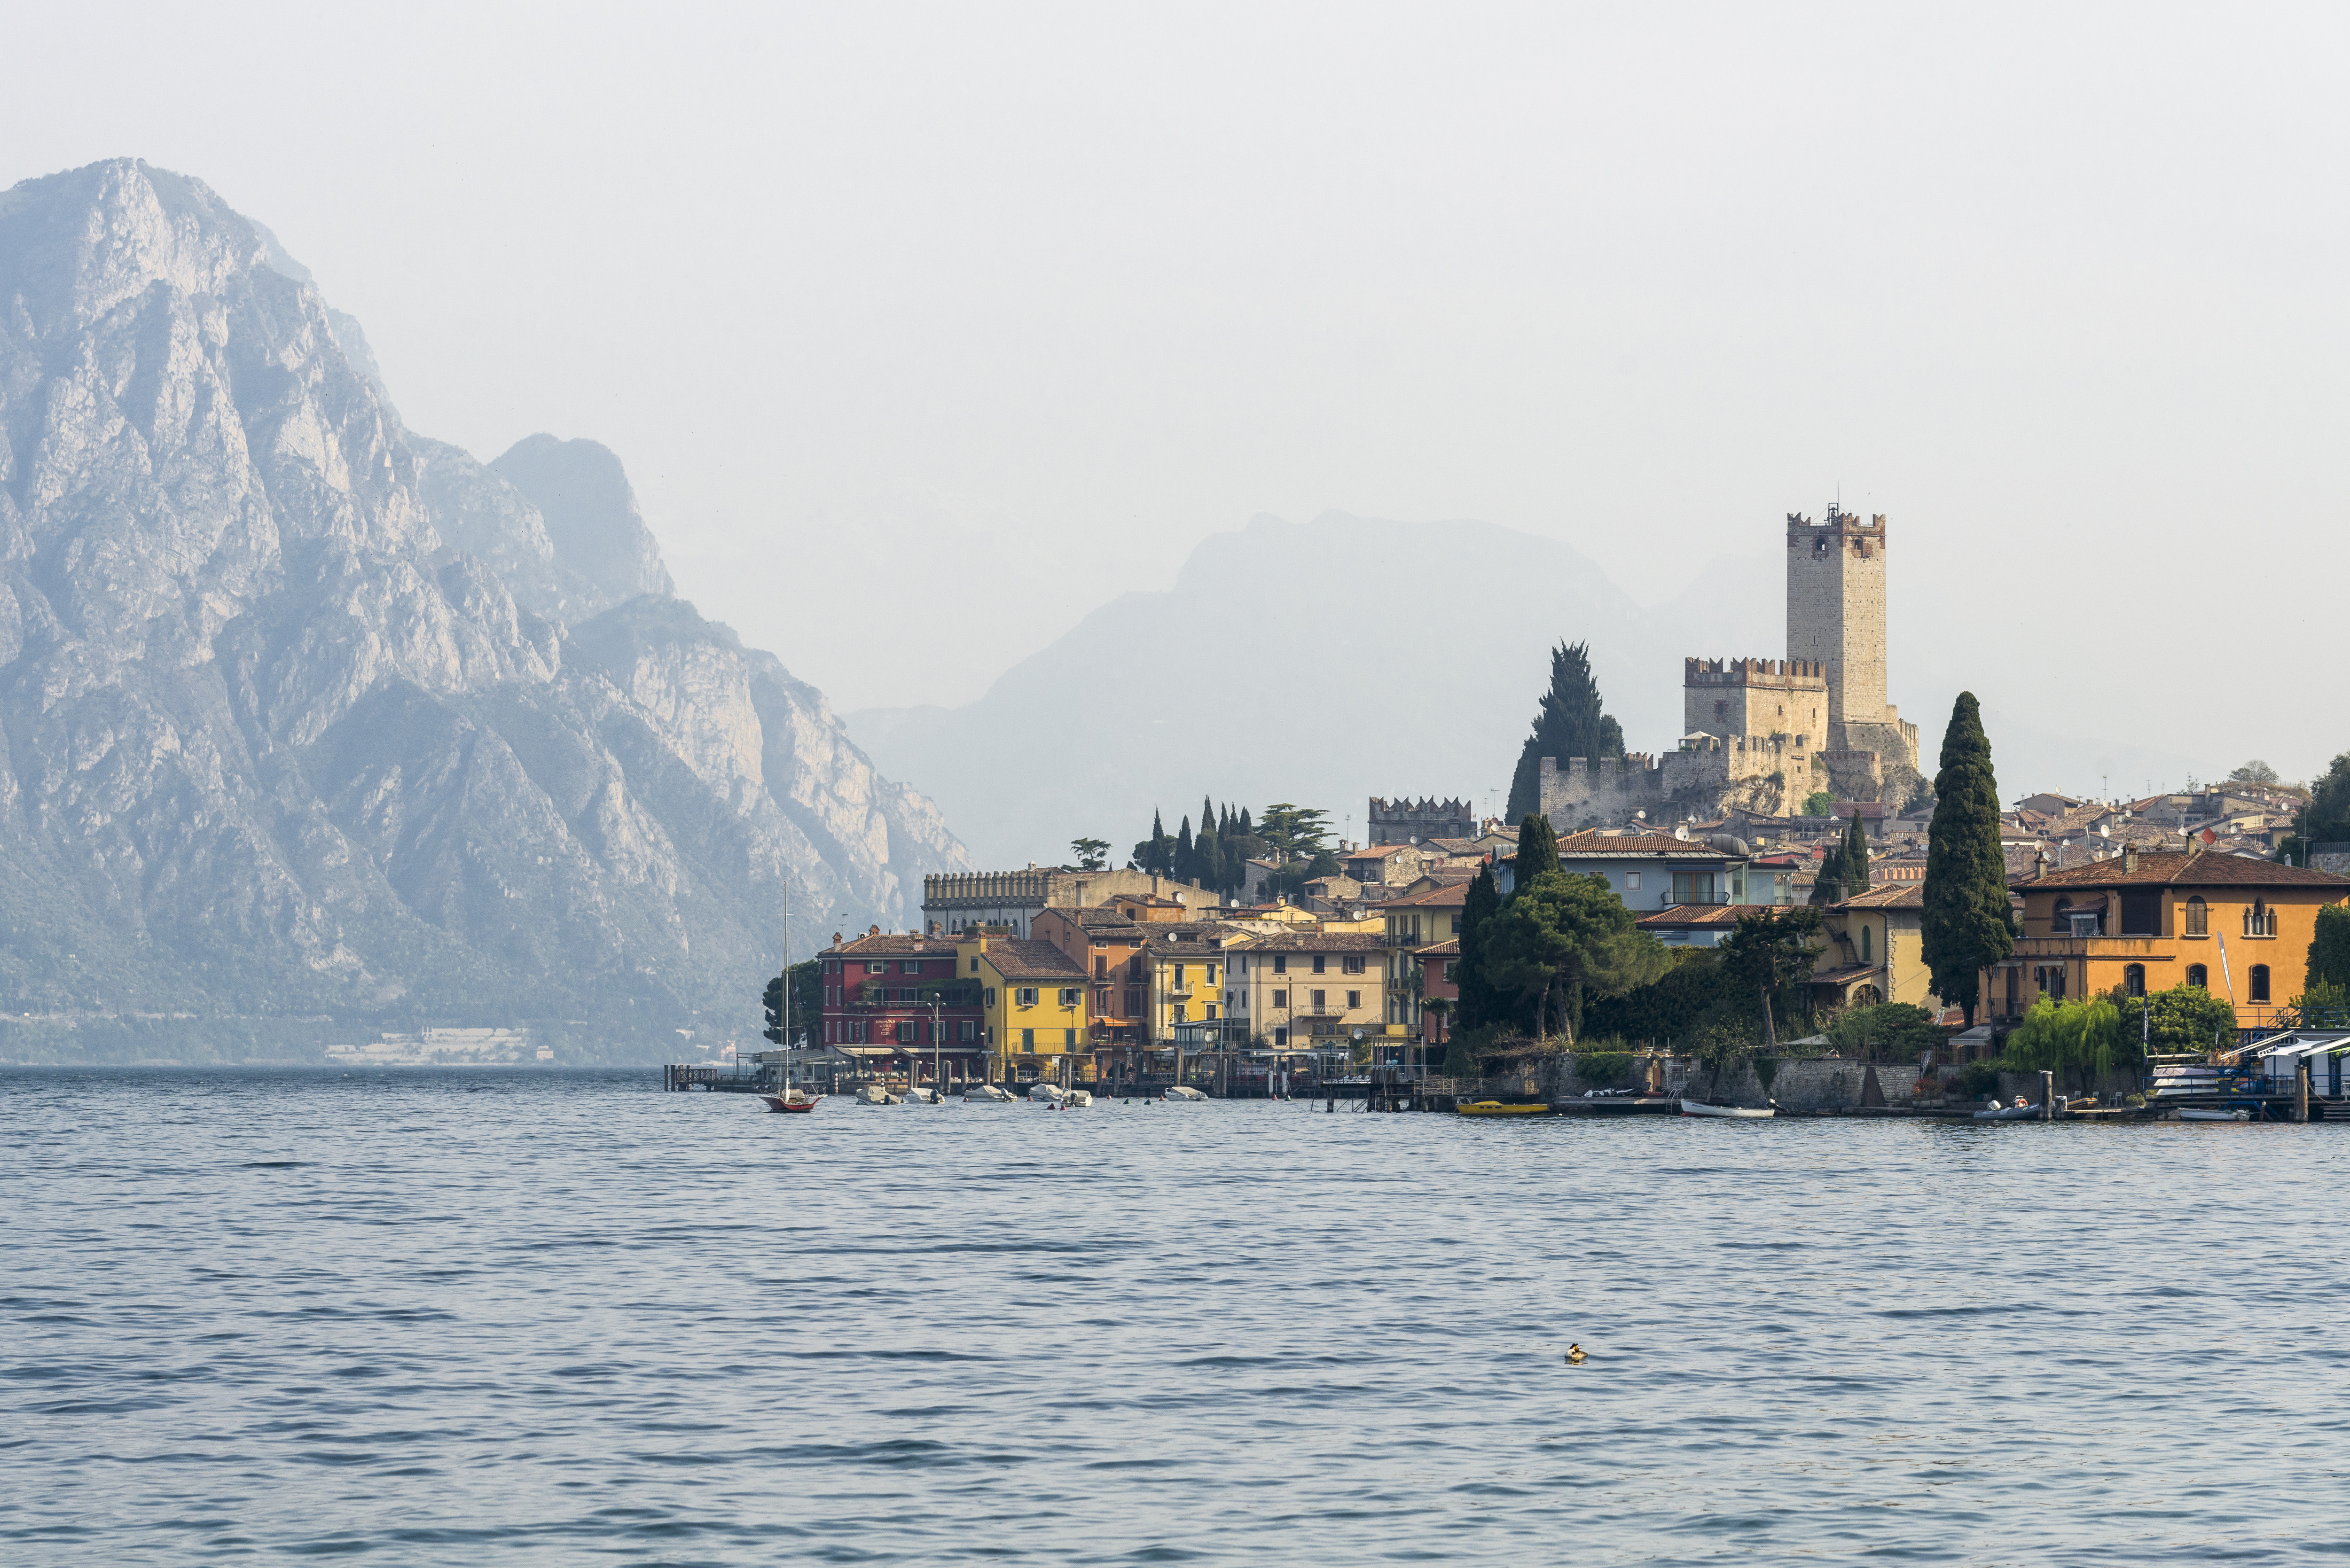 MALCESINE, VERONA, ITALY - 2015/04/16: The old town is located at the shore of Lake Garda, seen across the Waters. (Photo by Frank Bienewald/LightRocket via Getty Images)